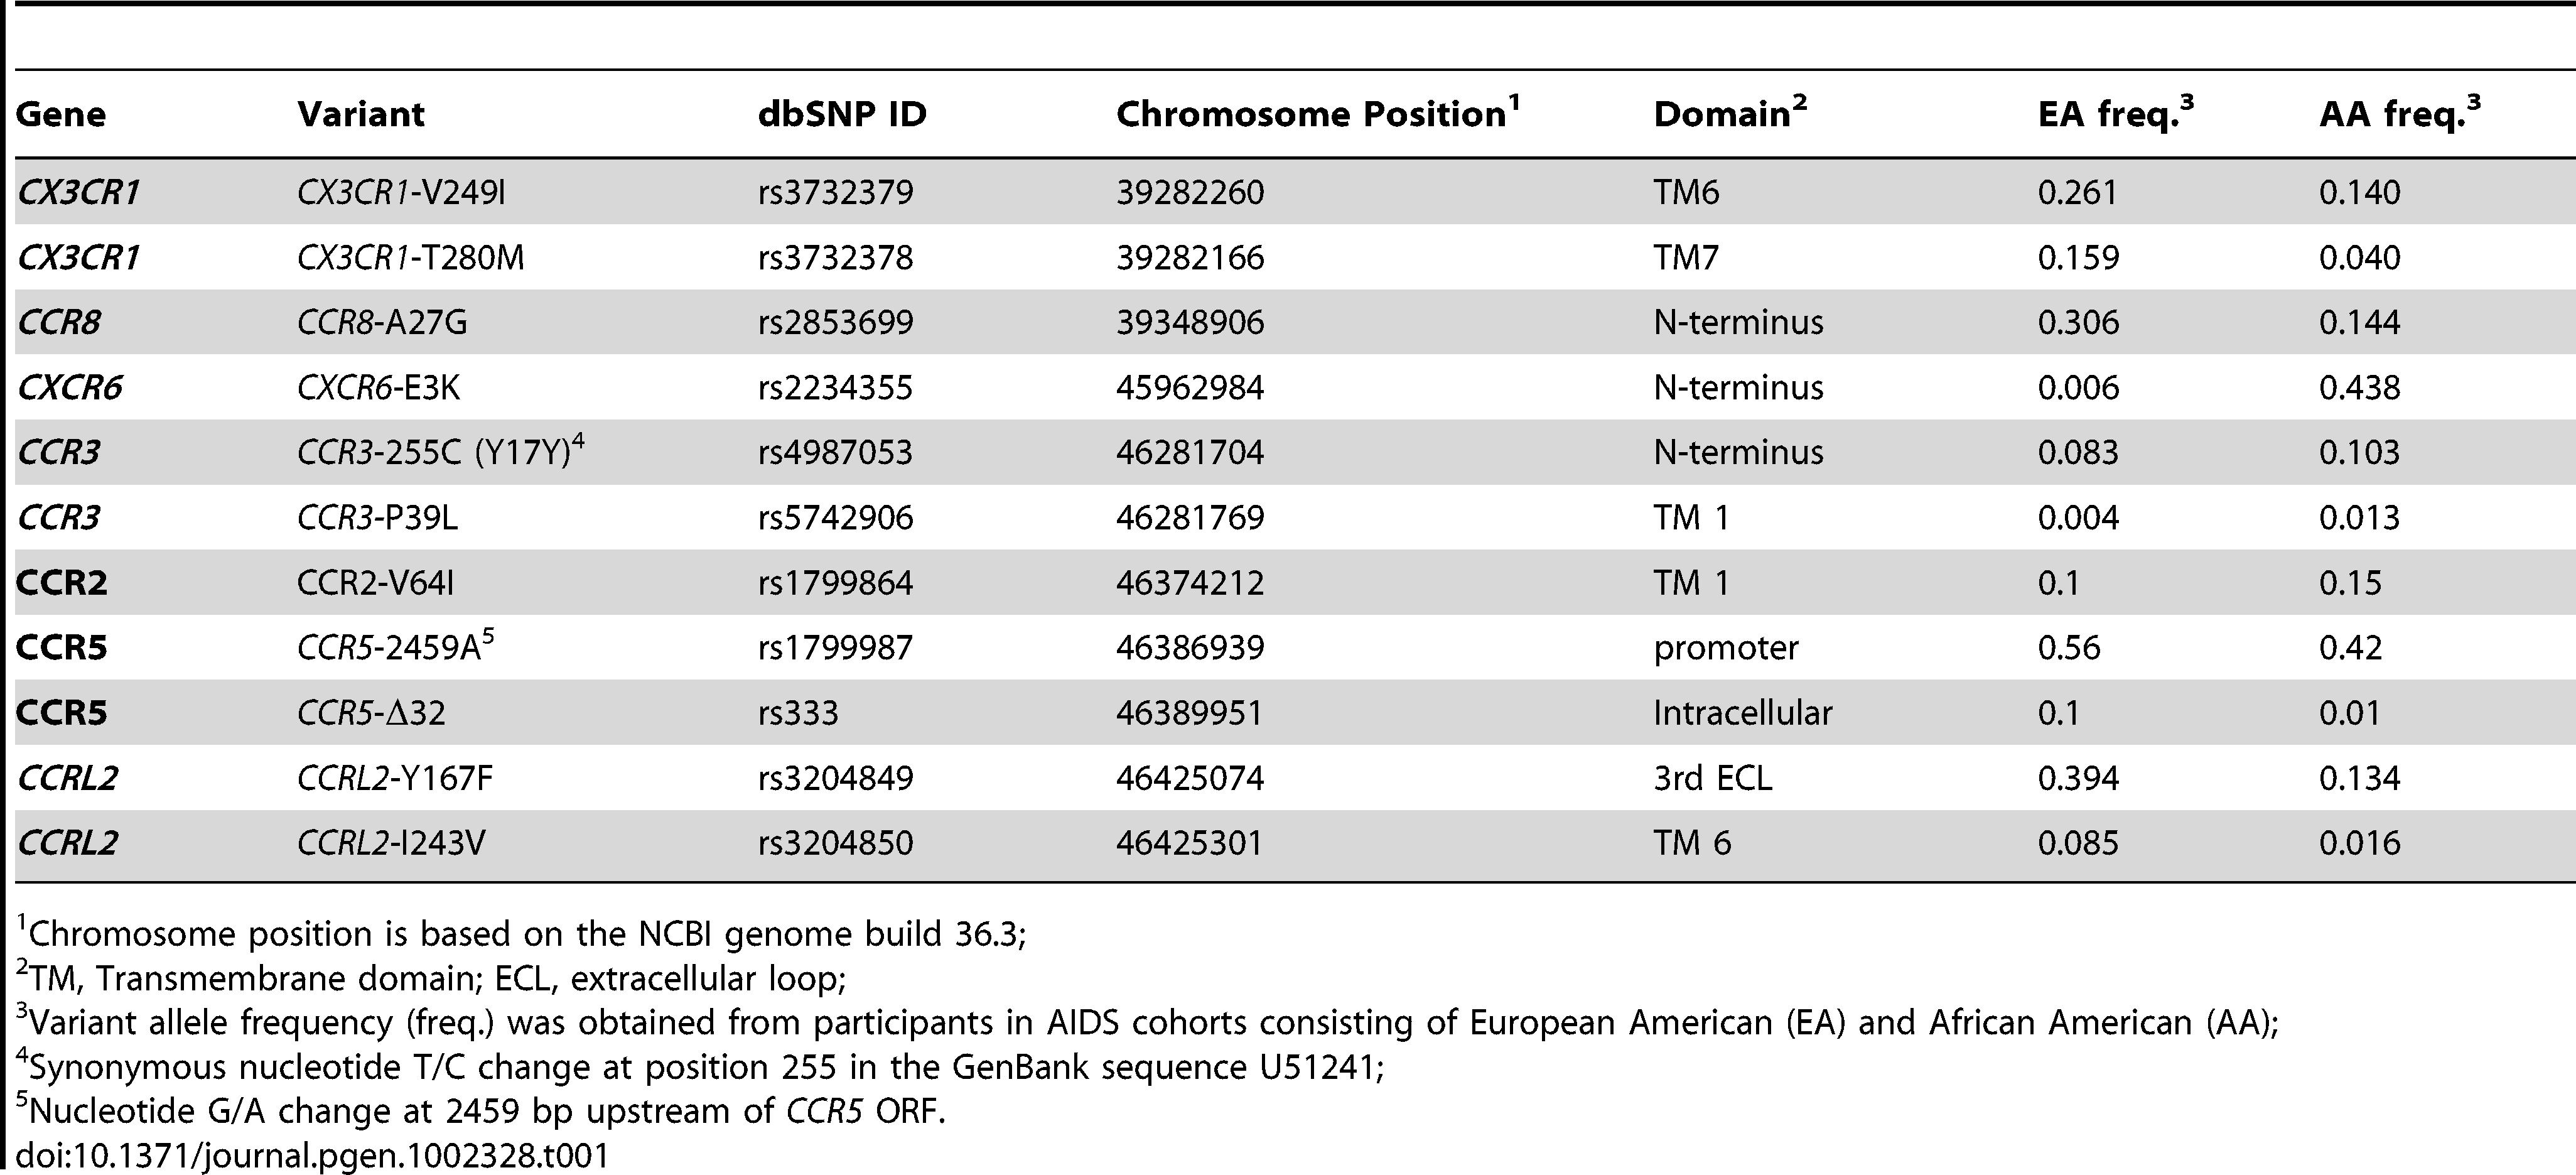 Characteristics and allele frequencies of the chemokine receptor variants.